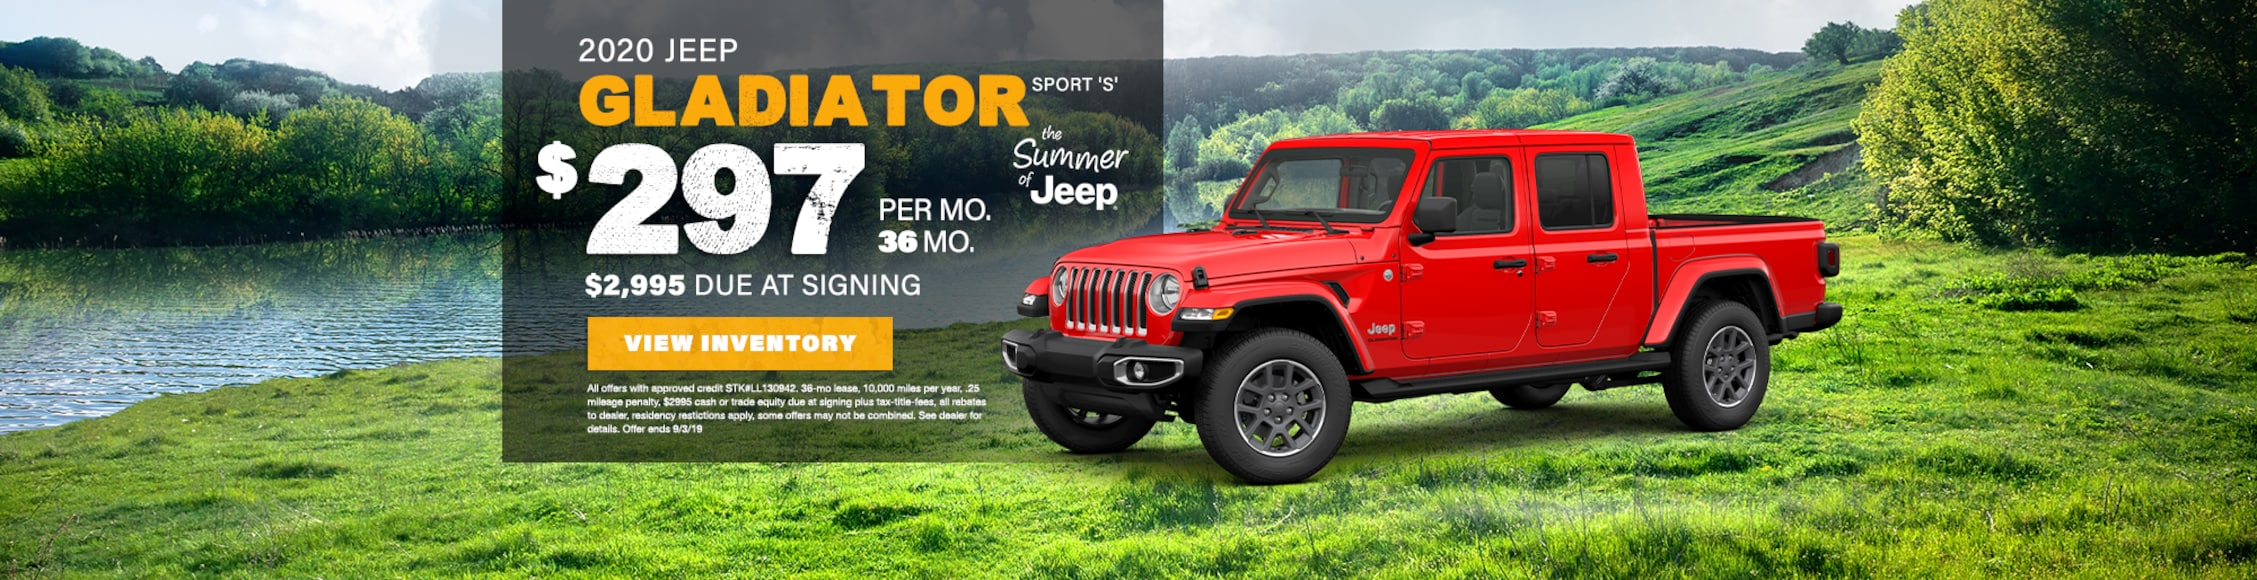 Jeep Dealers Dayton Ohio >> Crown Chrysler Dodge Jeep Ram Dealership In Dublin Oh